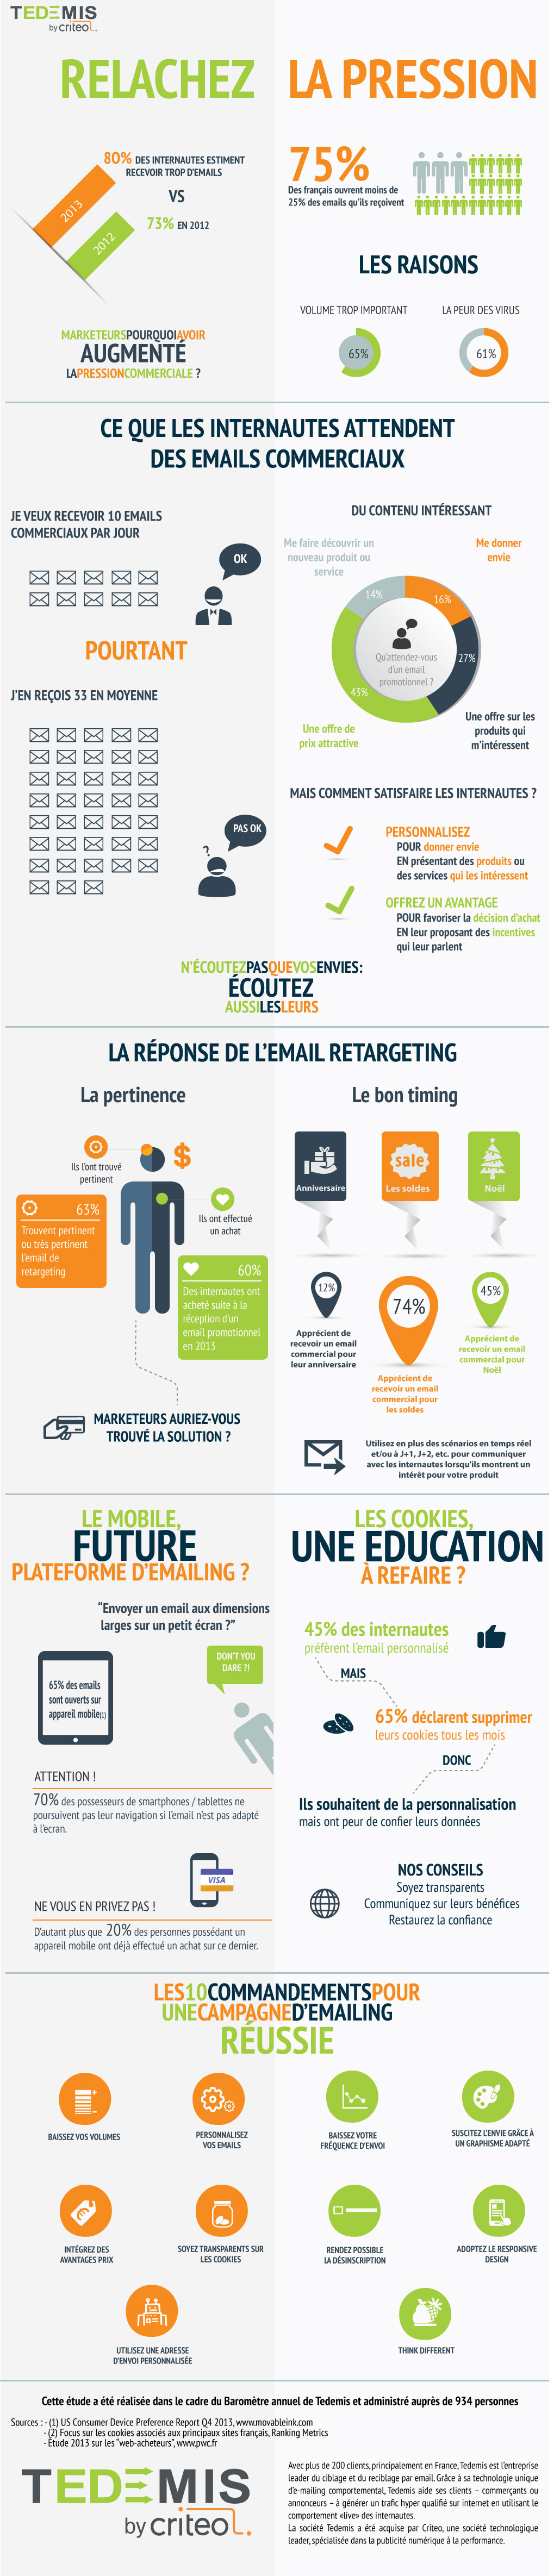 Emailing et pression marketing